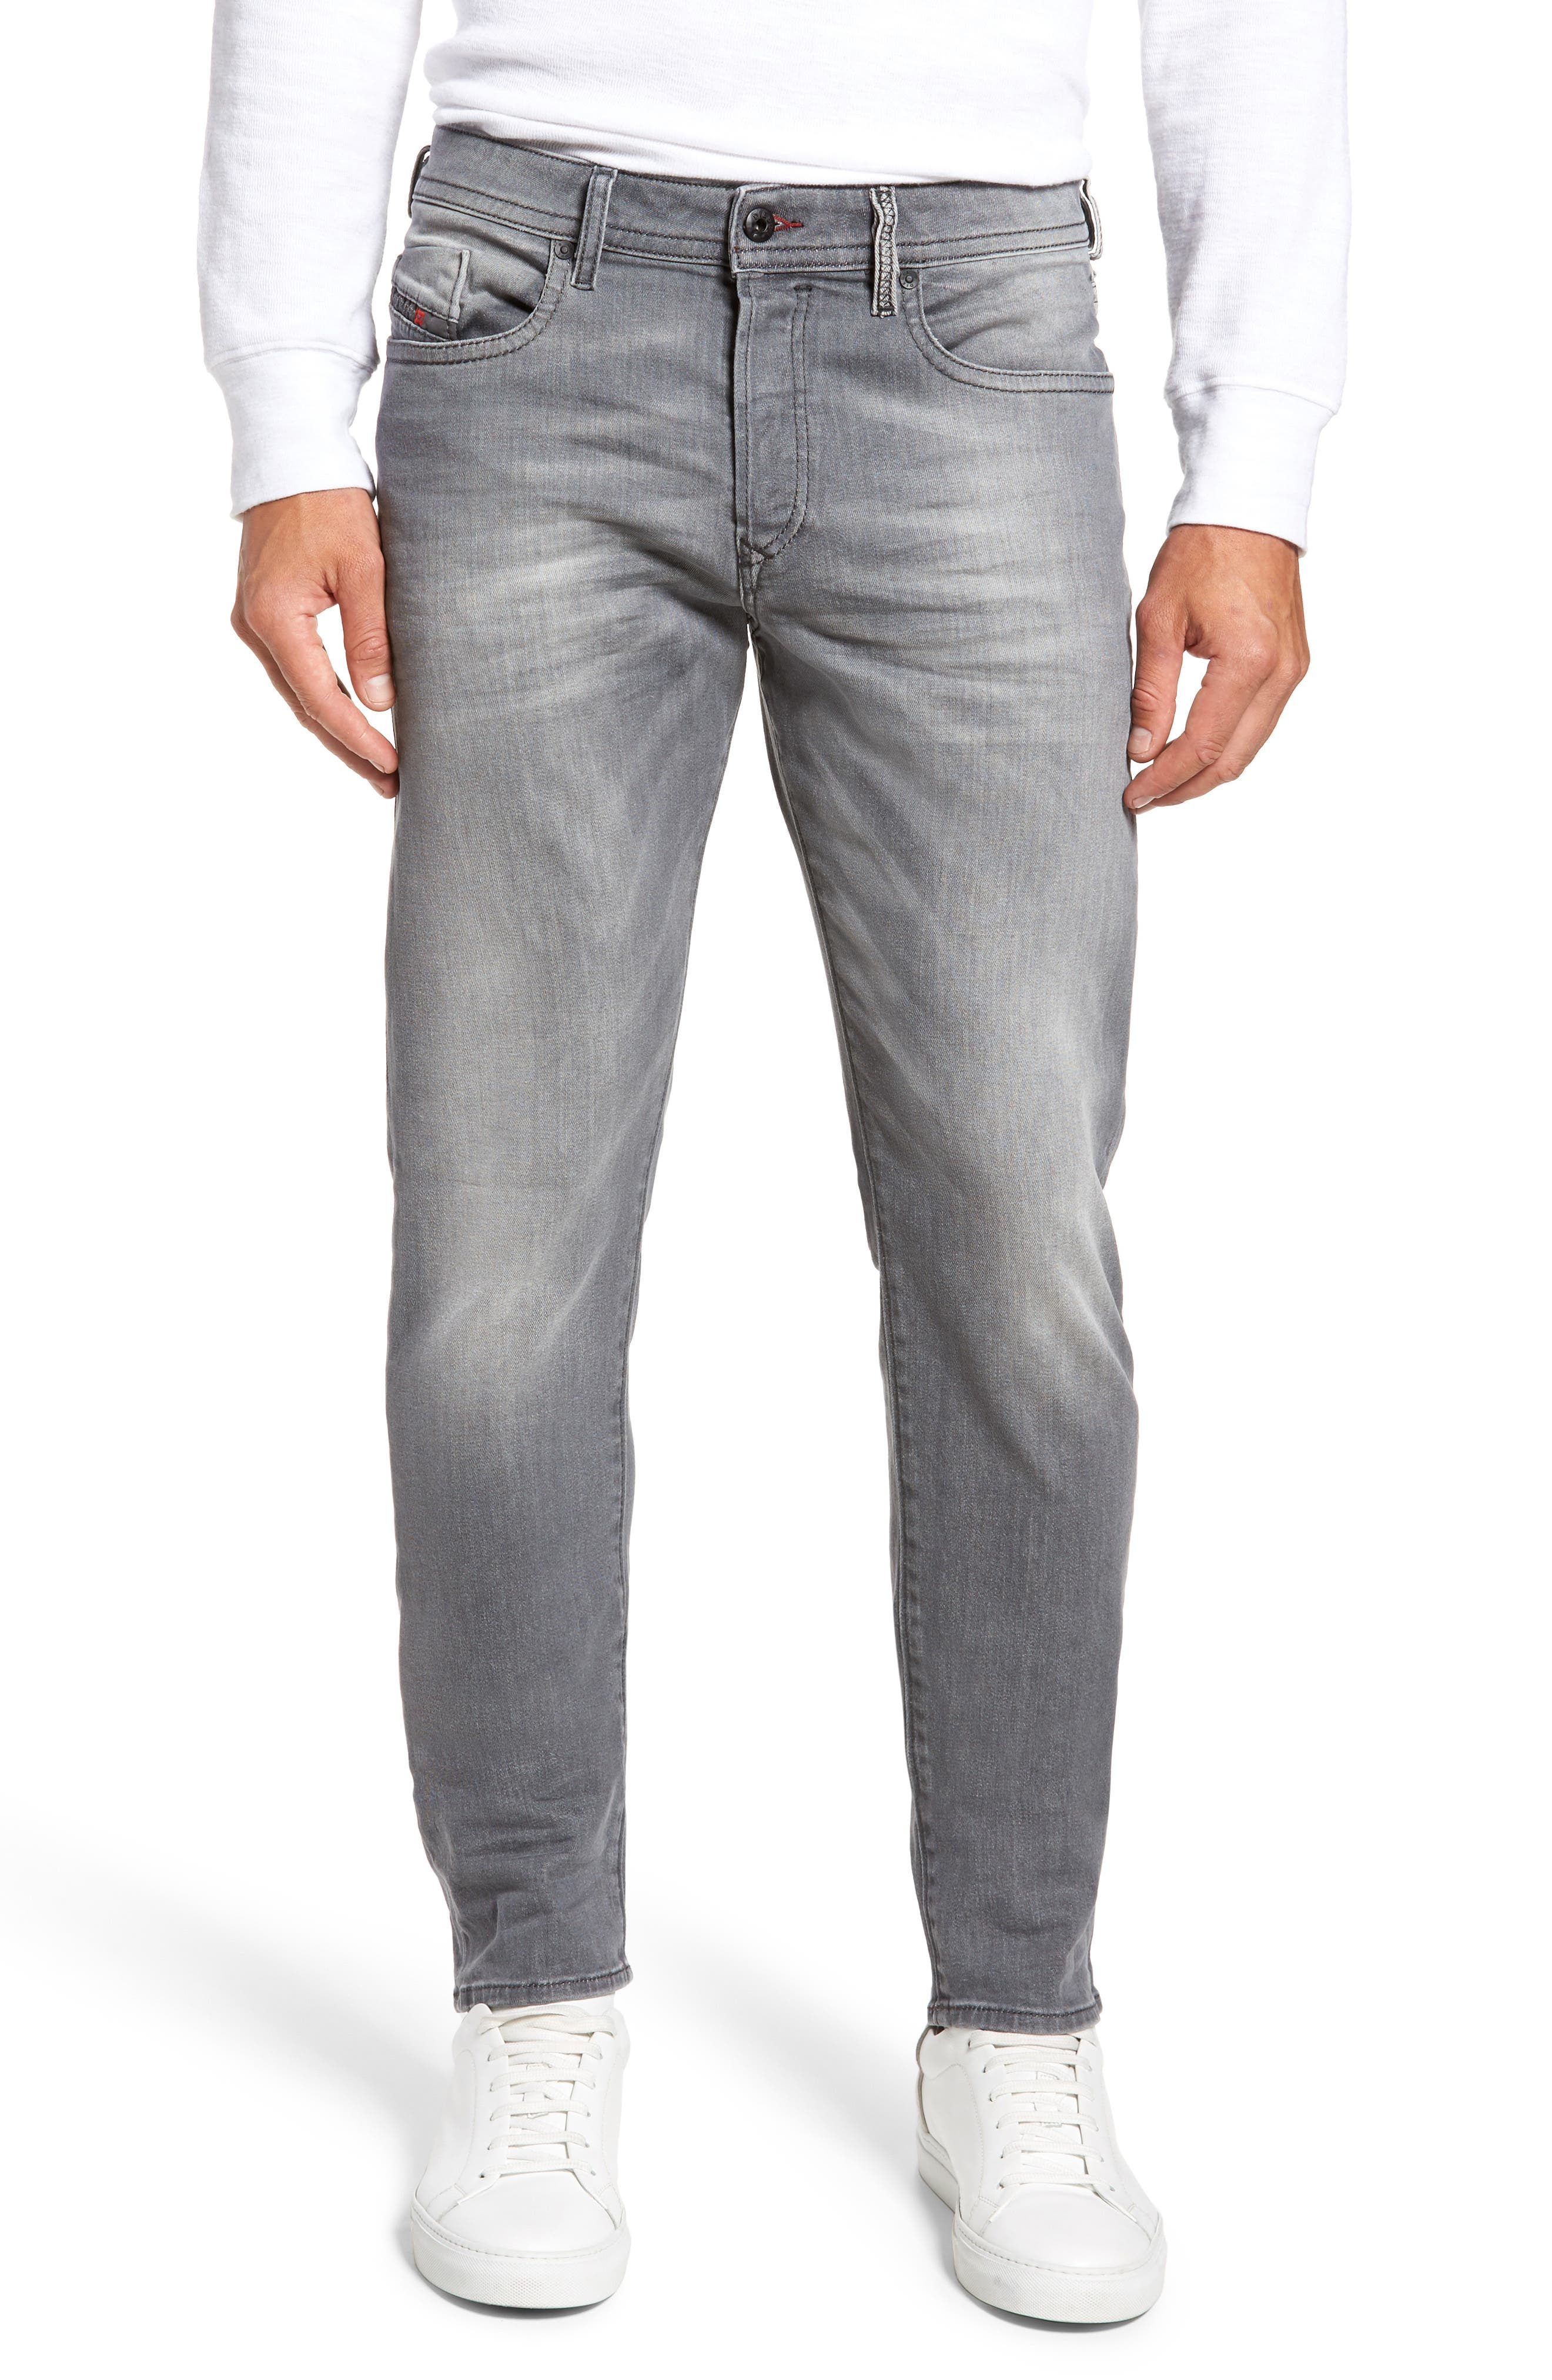 Buster Slim Straight Leg Jeans,                             Main thumbnail 1, color,                             084Hp